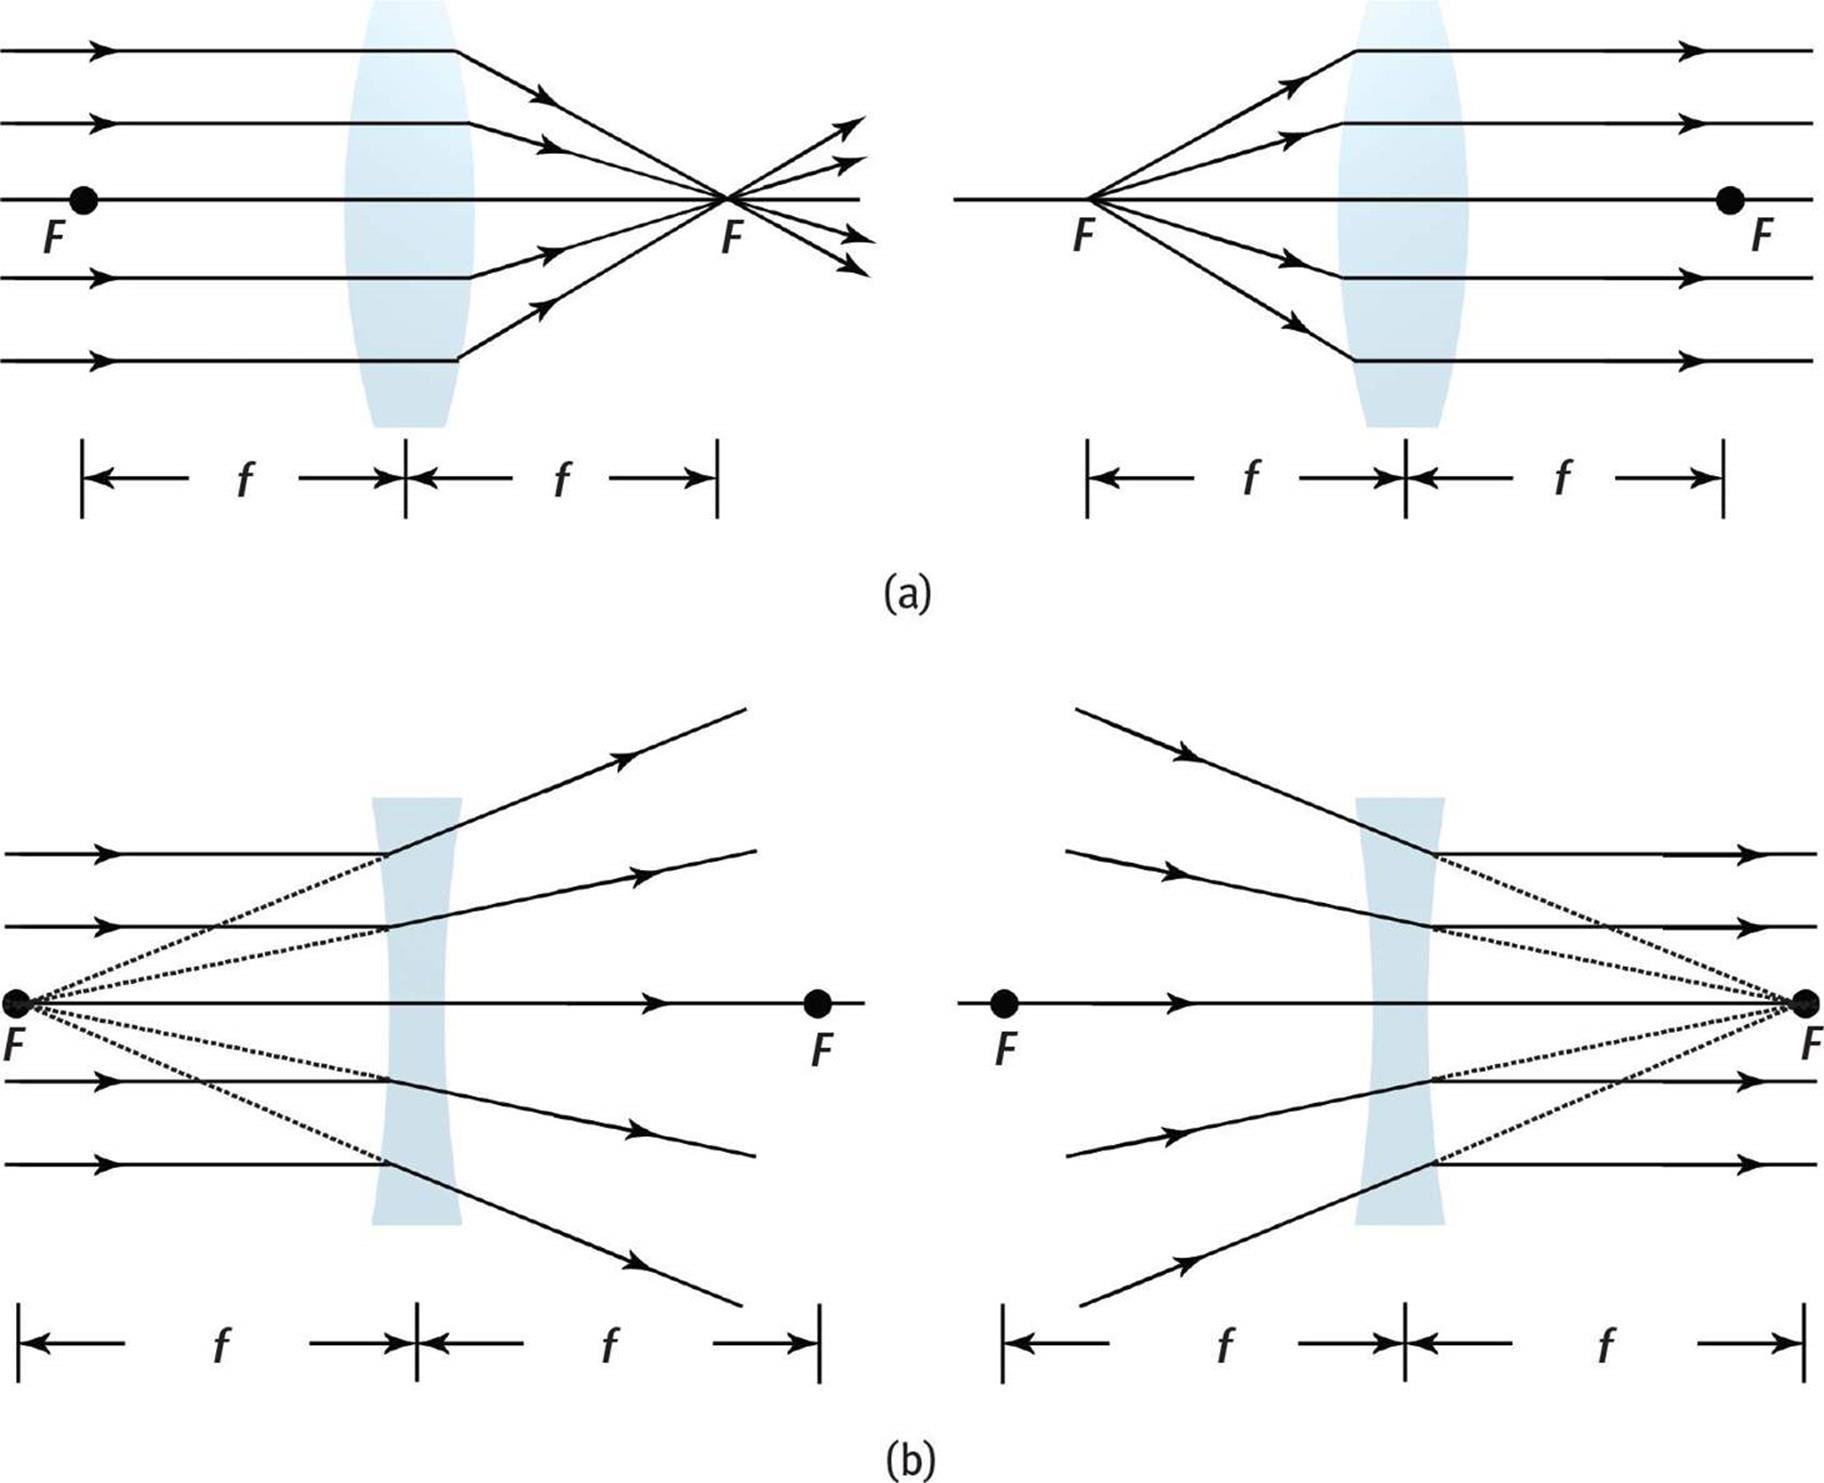 hight resolution of ray diagrams for single lenses a convex converging lenses b concave diverging lenses real world